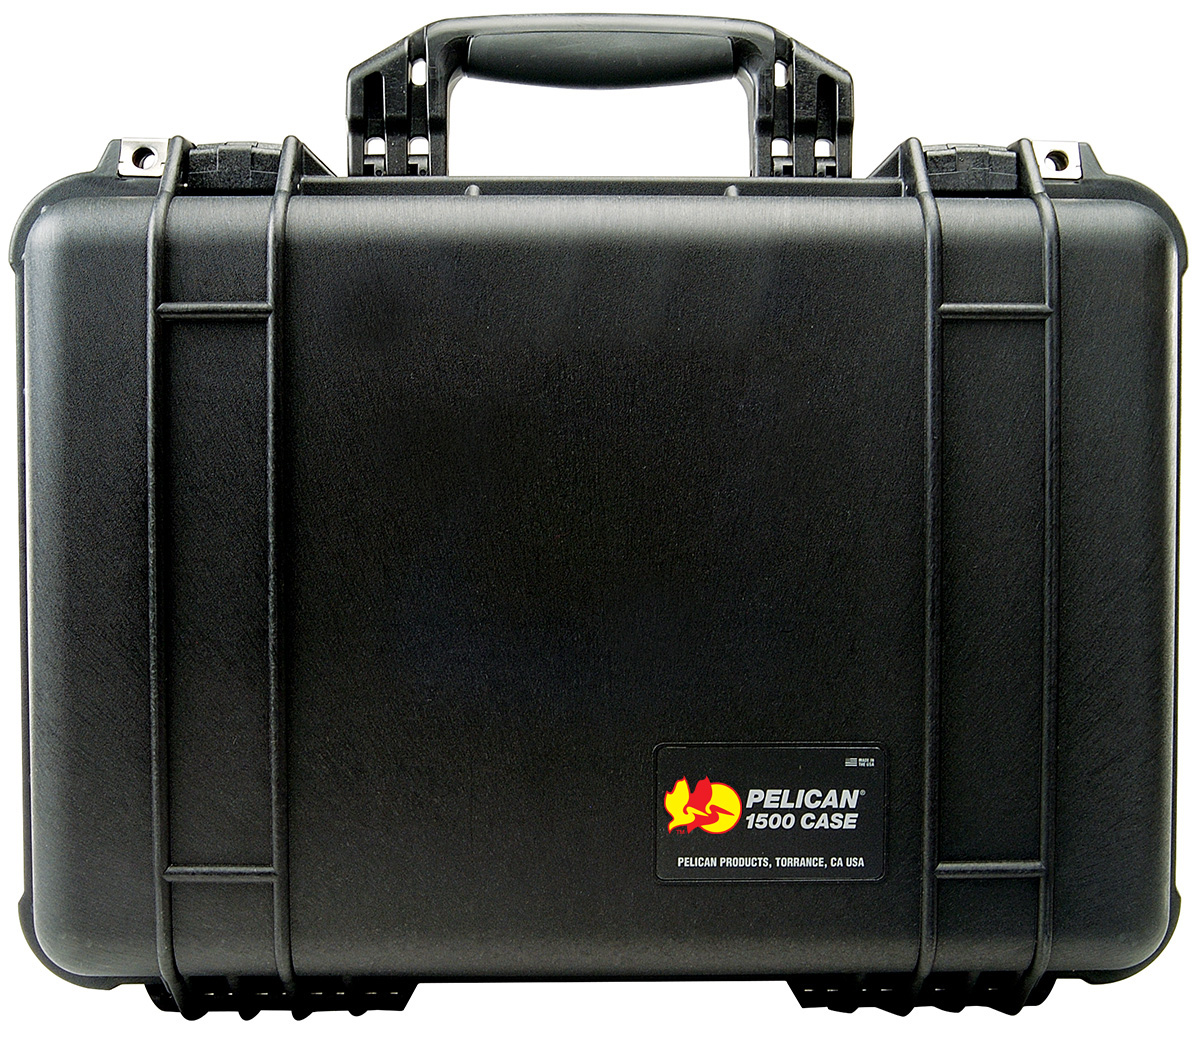 pelican peli products 1500 protective travel camera lens case